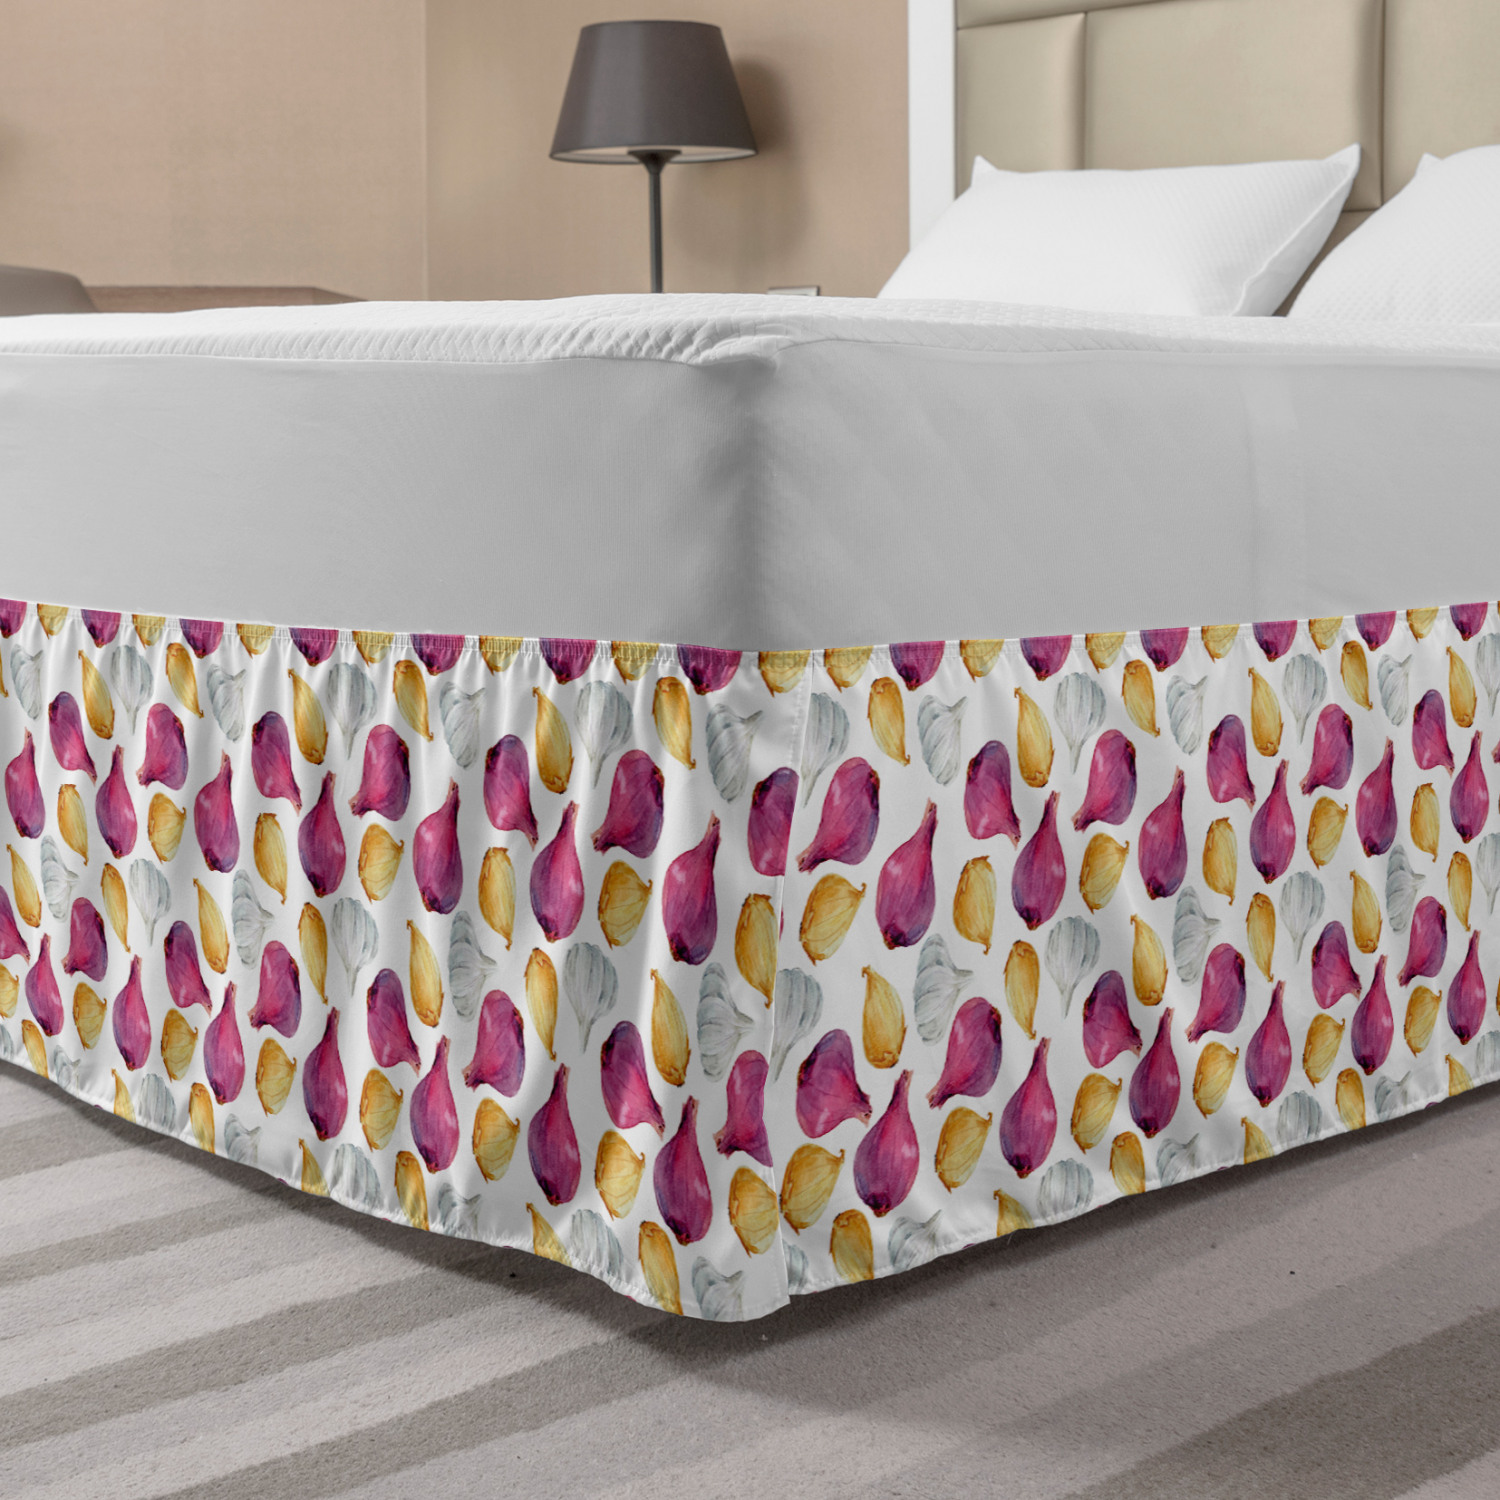 Vegetable Bed Skirt Watercolor Onion Shallot And Garlic Ingredients Flavor Theme Elastic Bedskirt Dust Ruffle Wrap Around For Bedding Decor 4 Sizes Fuchsia Sand Brown By Ambesonne Walmart Com Walmart Com